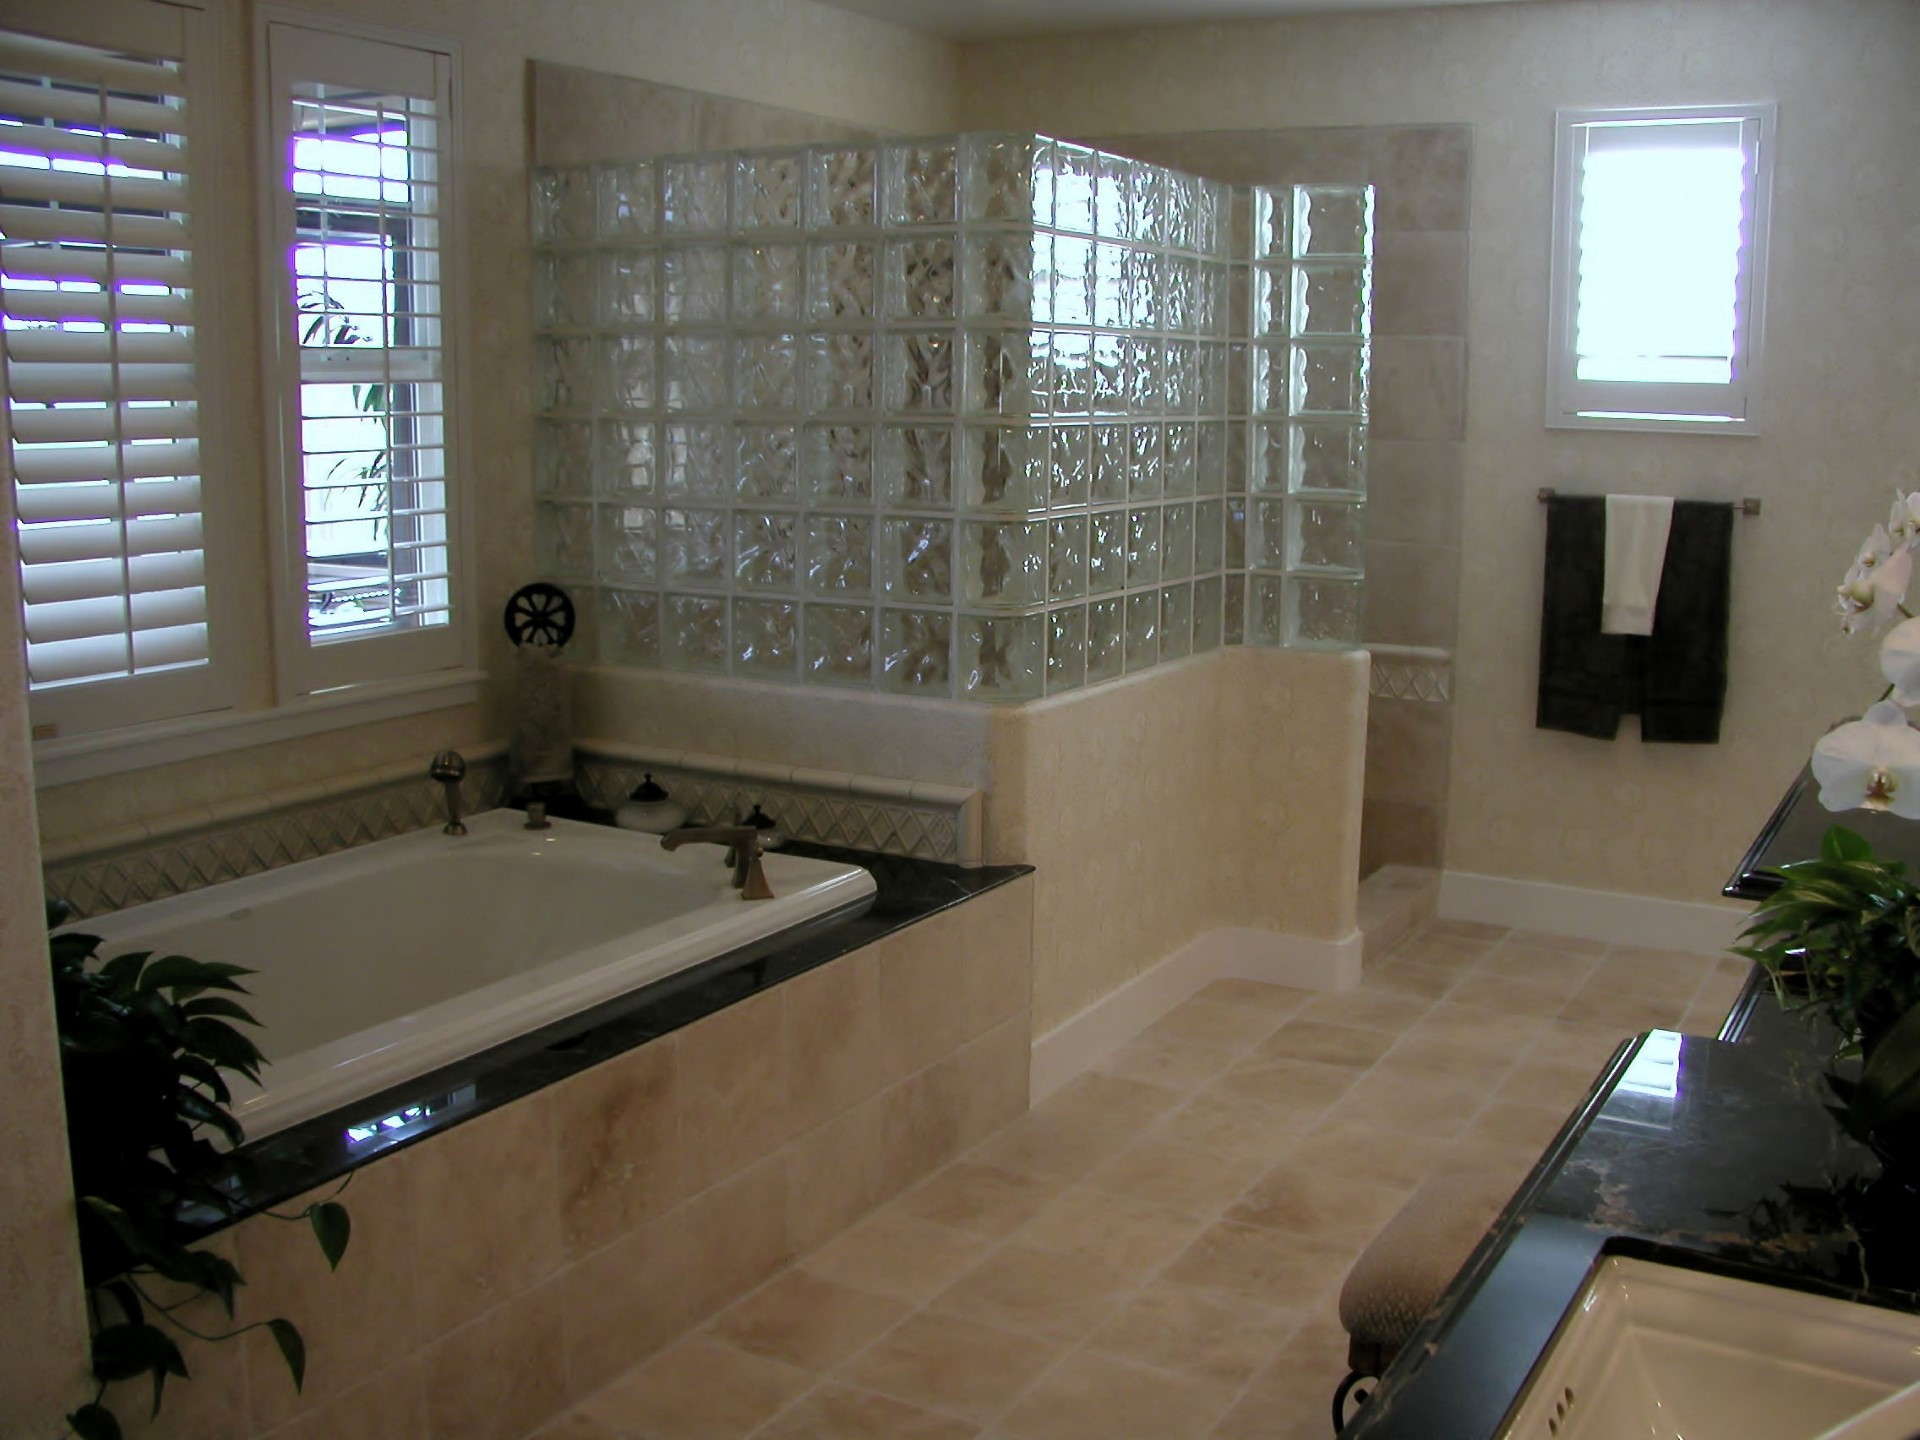 Quality Bathroom Remodeling Services Toilet Repair Replacement - Bathroom repair services